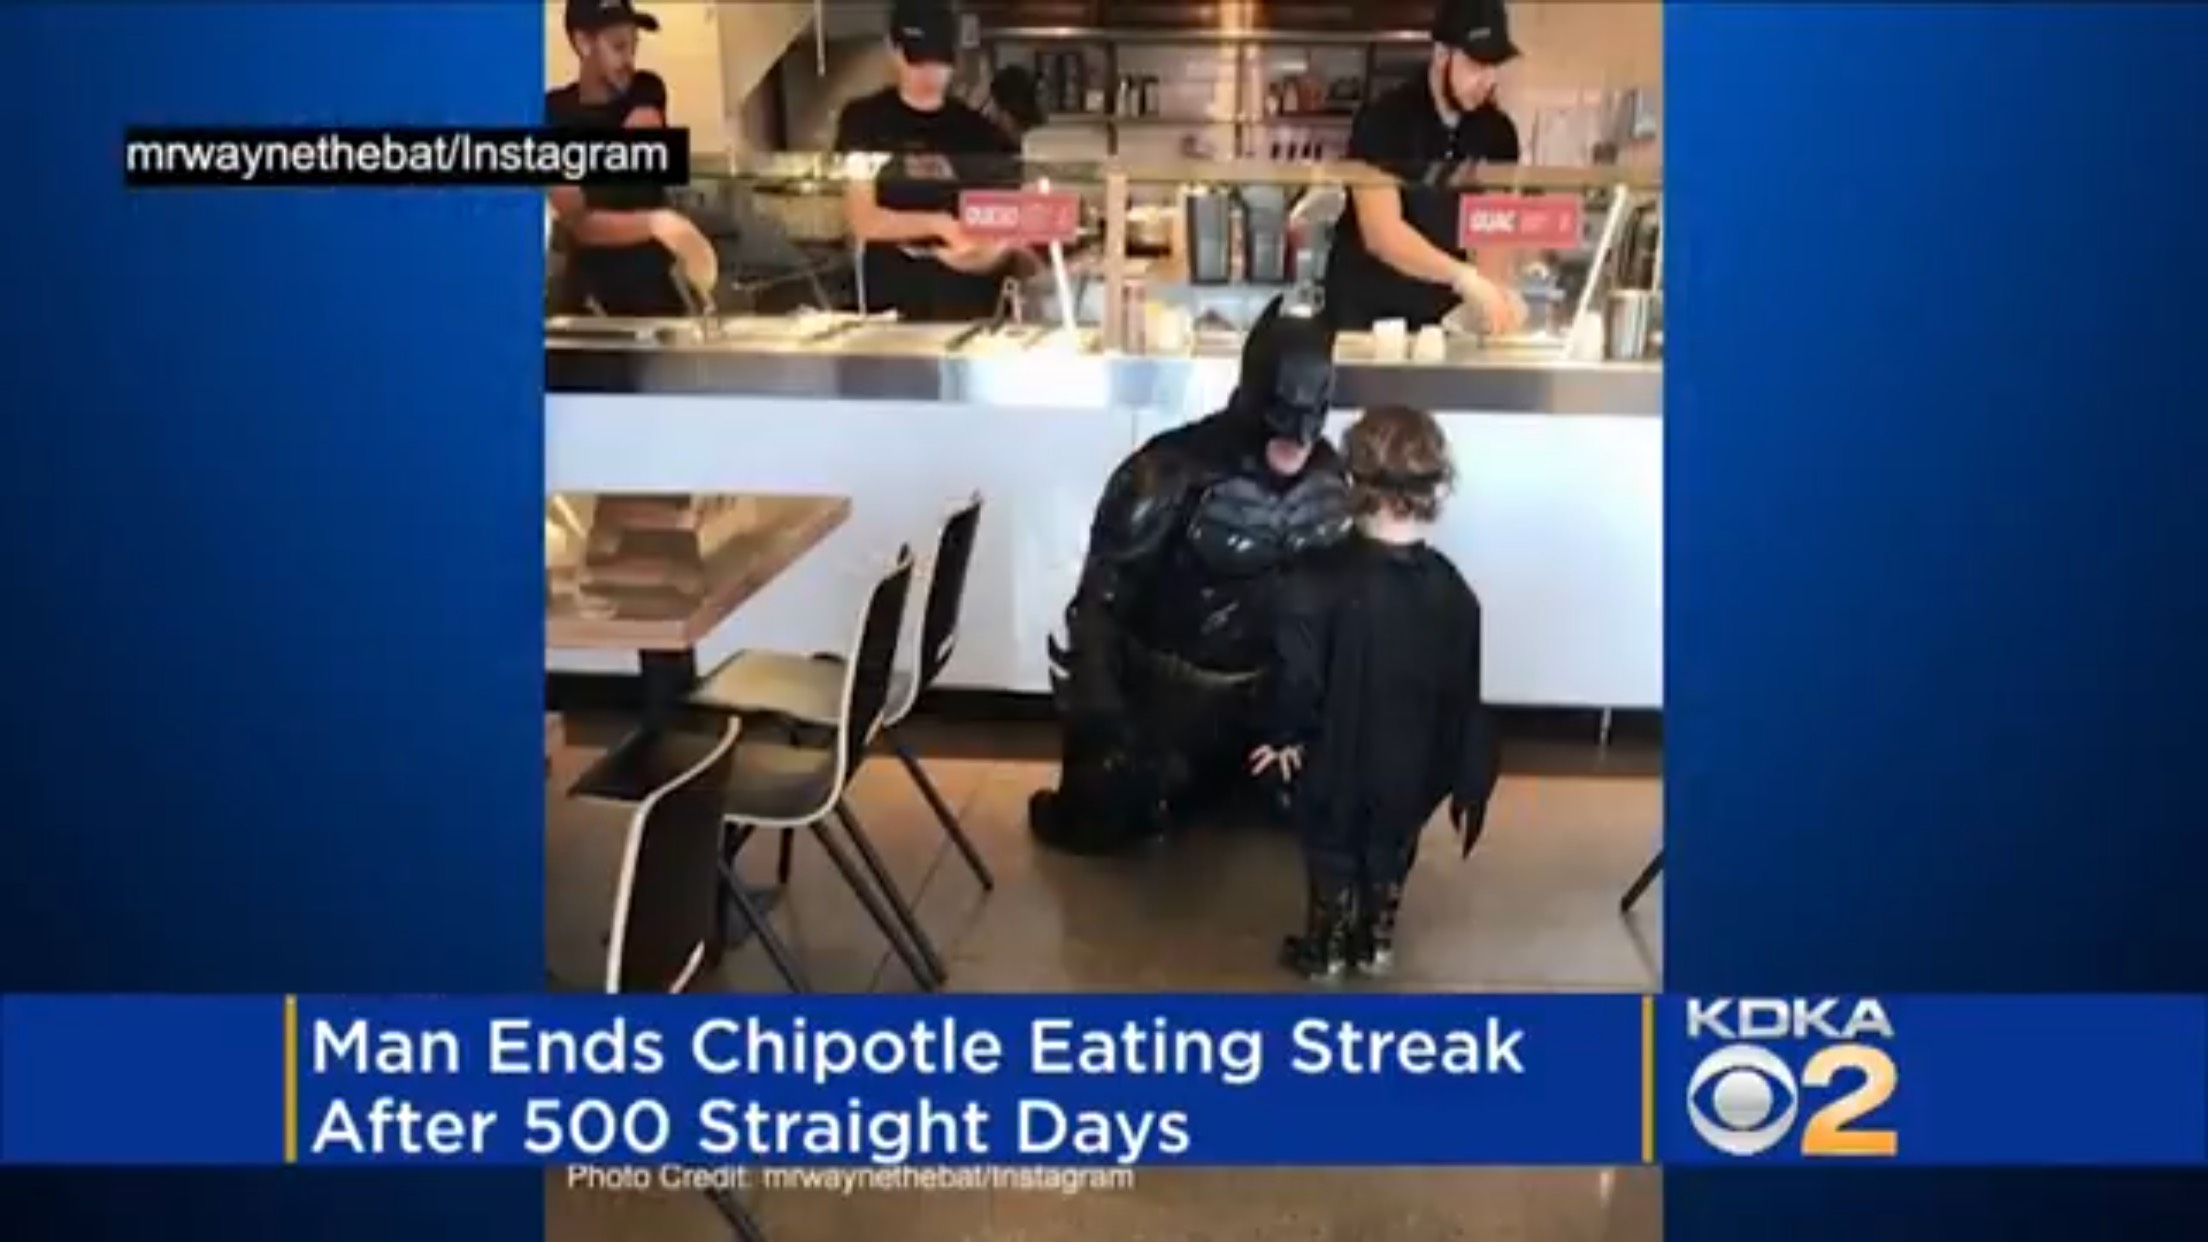 Man Ends Chipotle Eating Streak After 500 Days